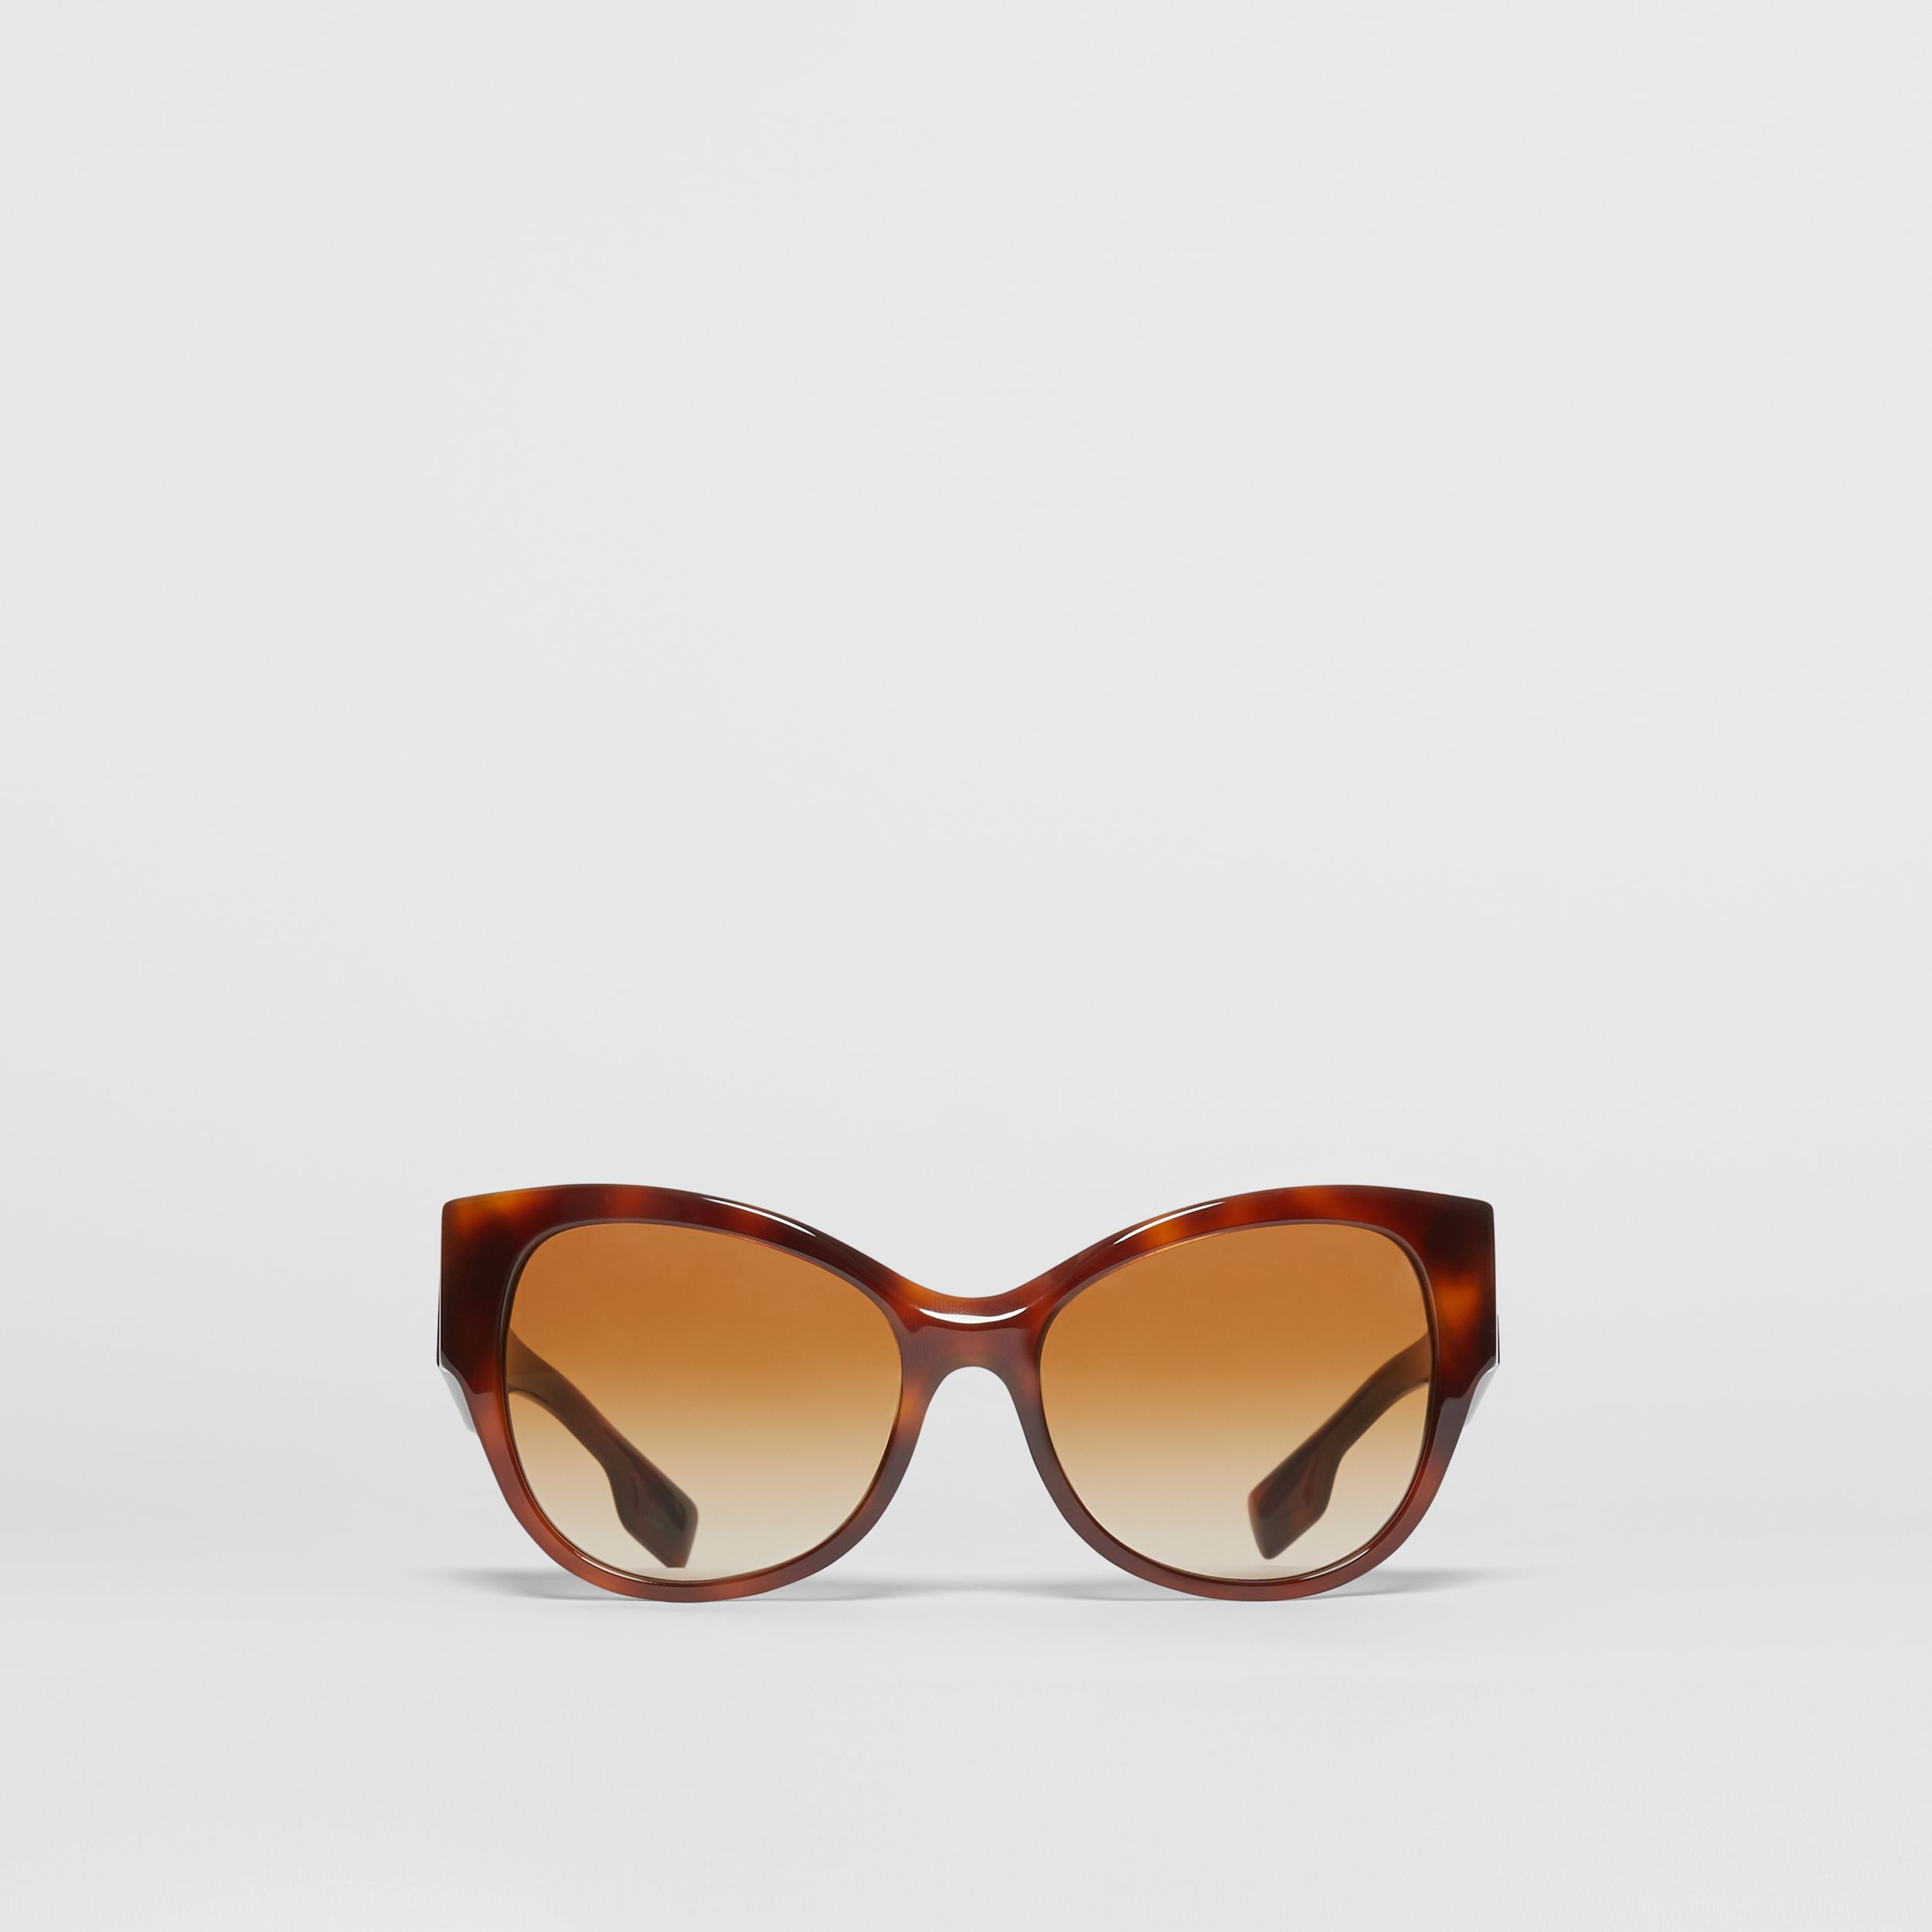 Butterfly Frame Sunglasses in Amber Tortoiseshell - Women | Burberry United Kingdom - 1